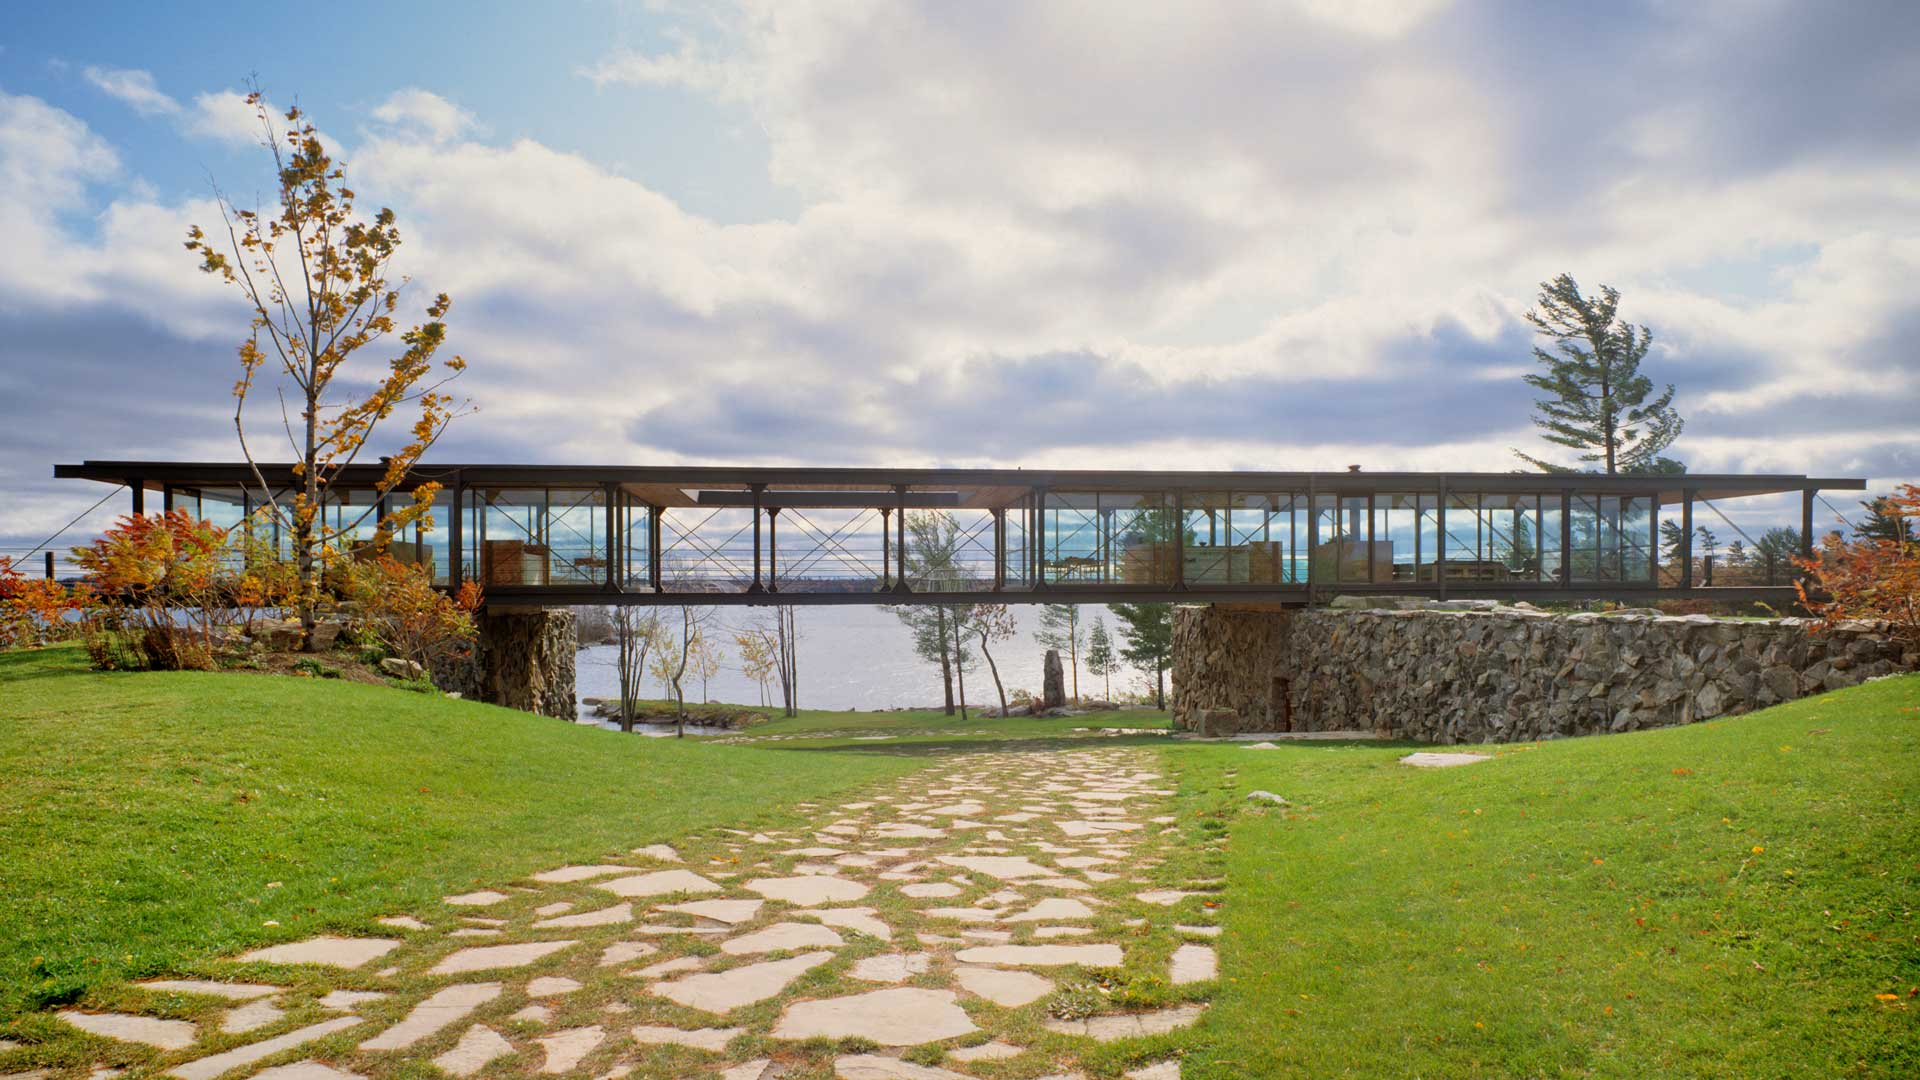 Exterior photo showing the residence in entirety surrounded by grassland and the lake in the back